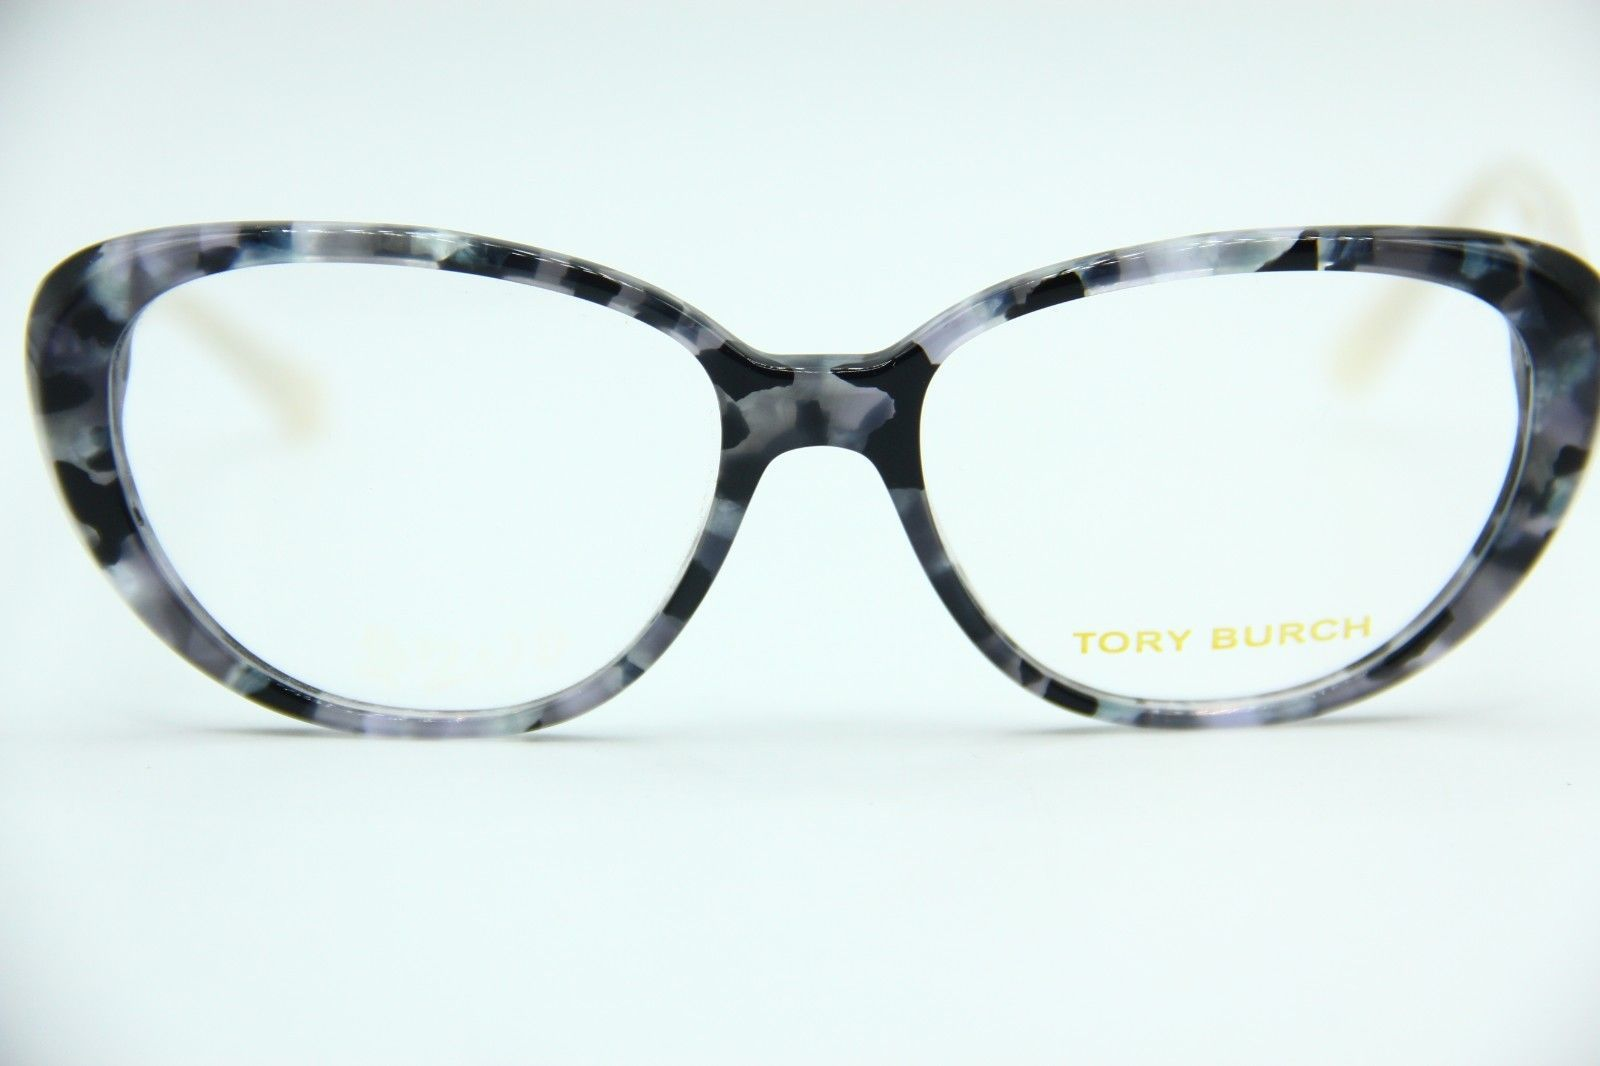 7c3a9965d8 NEW TORY BURCH TY 2078 1685 MARBLE EYEGLASSES AUTHENTIC FRAME RX TY2078  52-15